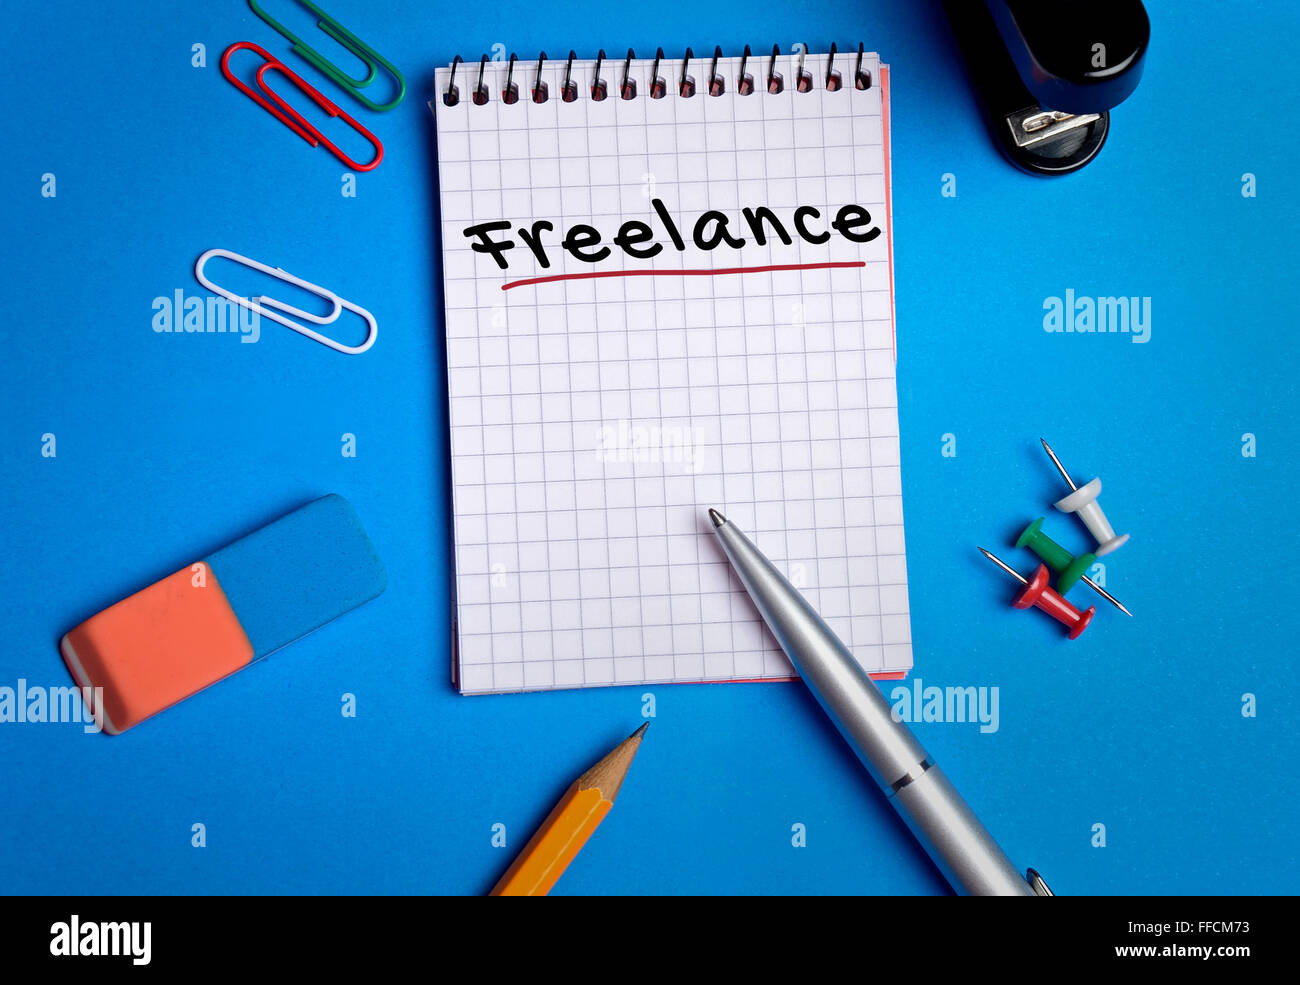 Freelance word on notebook page - Stock Image